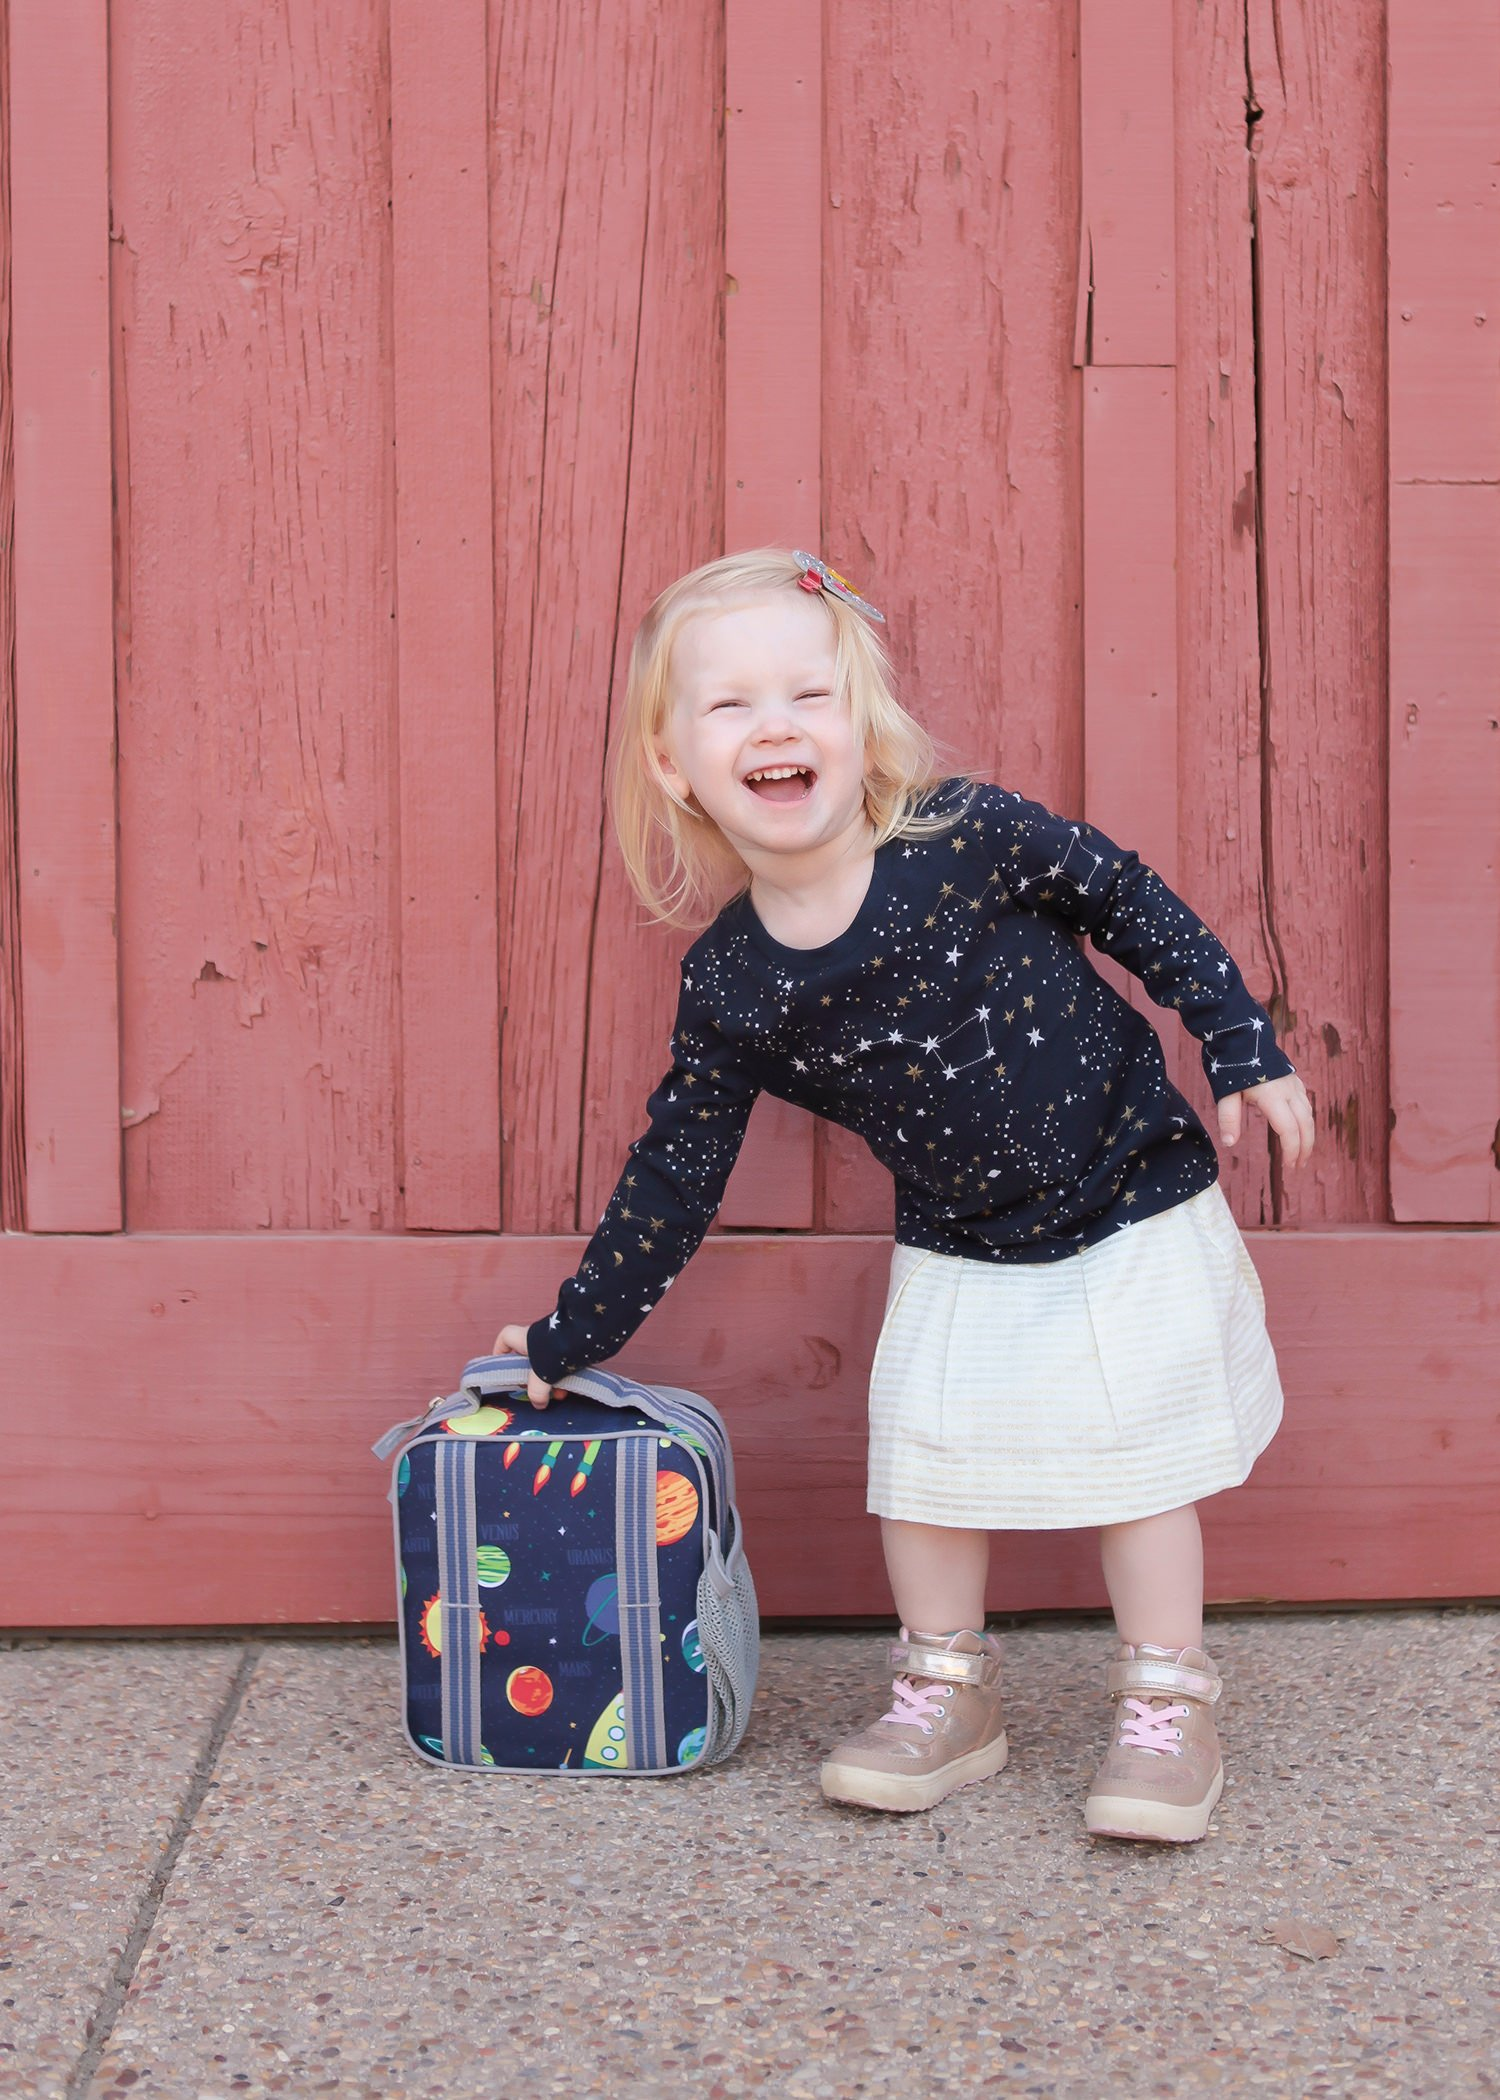 Back to school shopping got you a little nervous? Everything your kiddo needs to get from summer to winter in style-it's a complete fall capsule wardrobe!